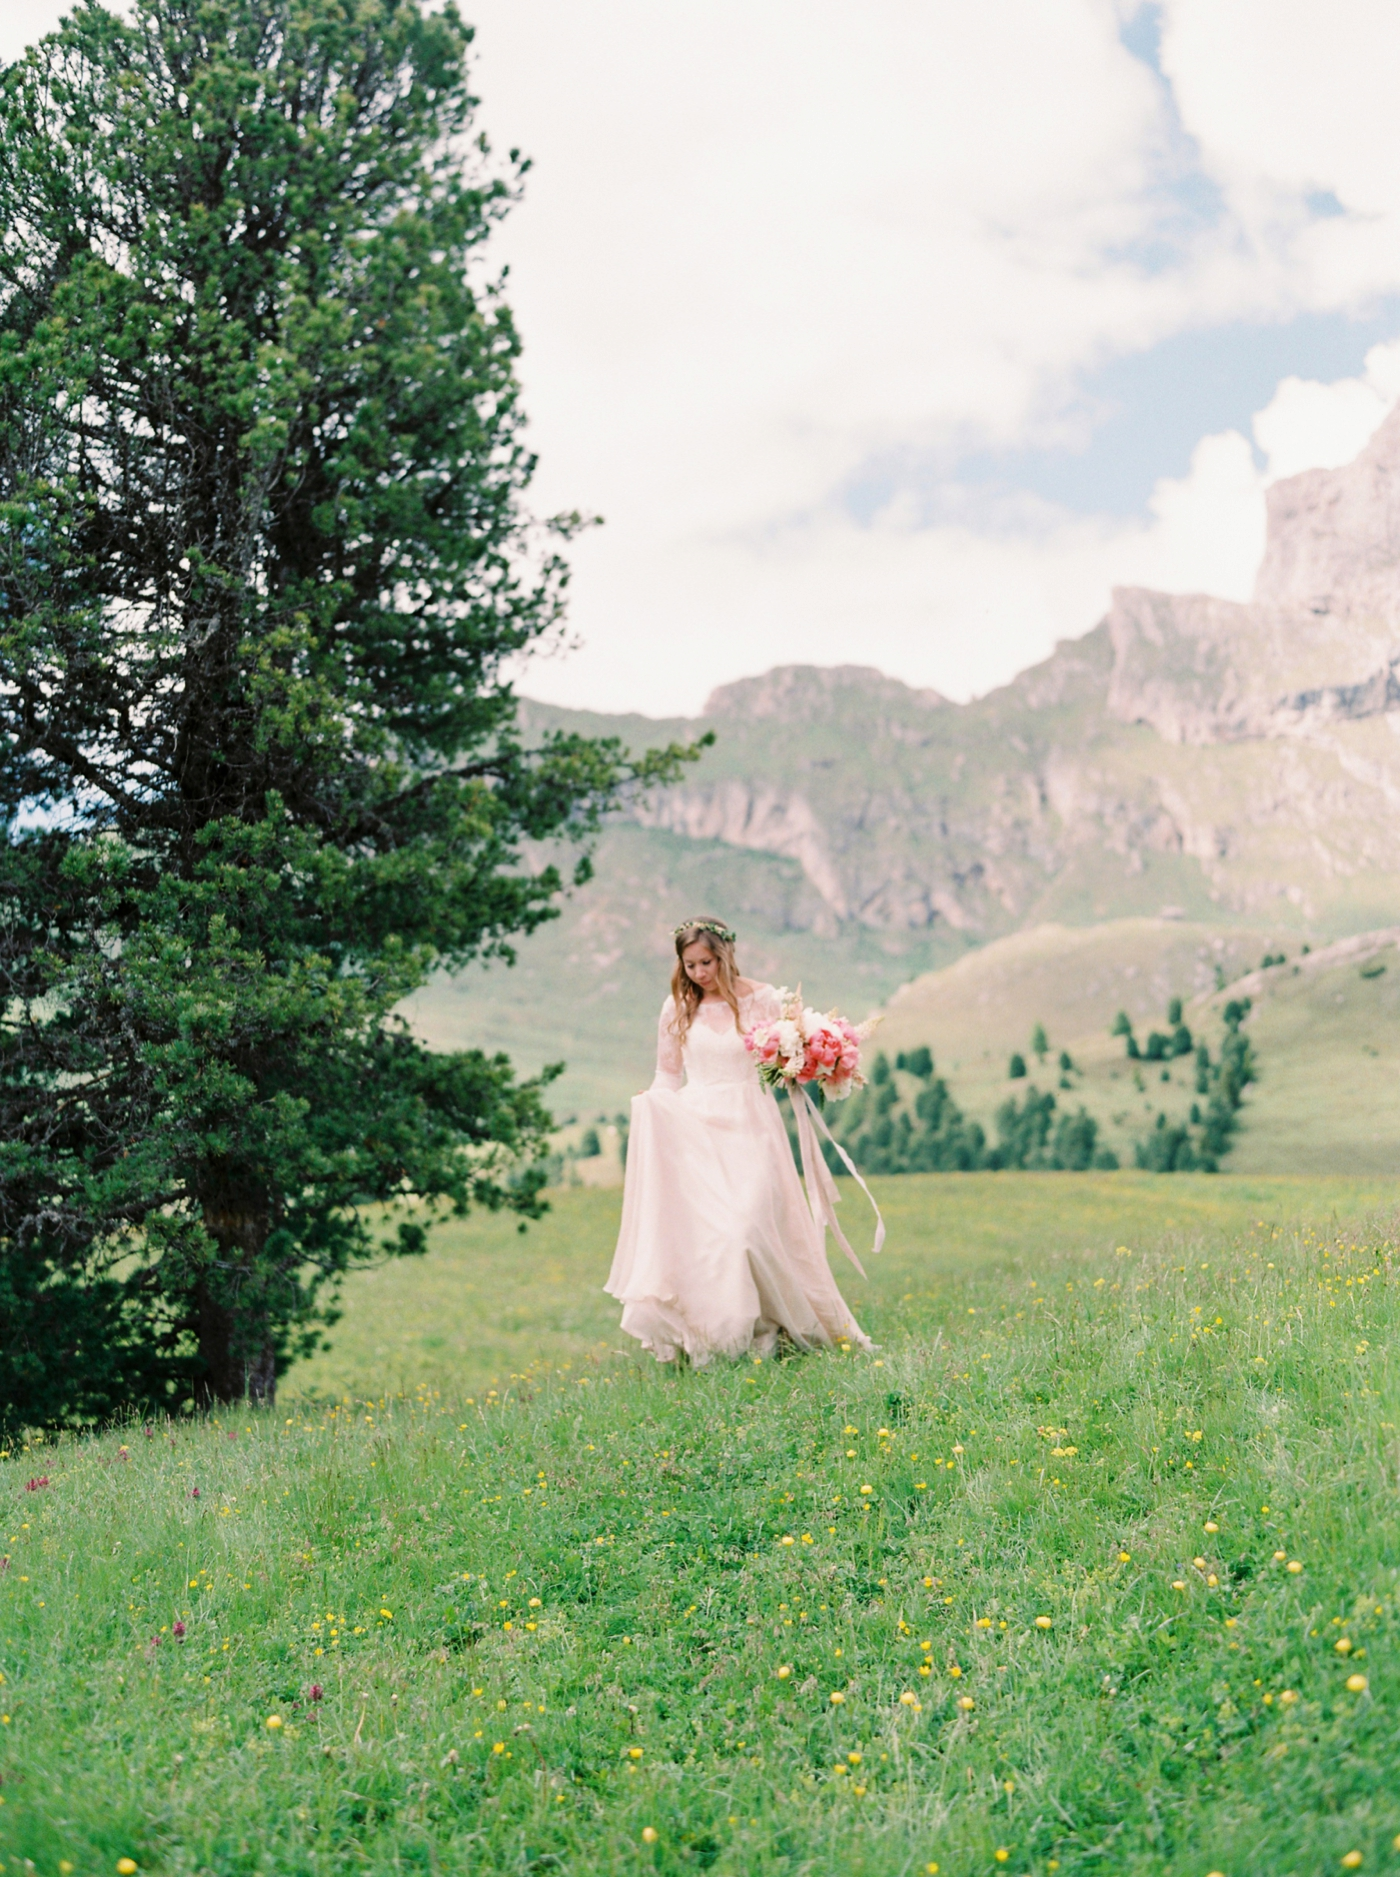 Italy wedding photographers | Dolomites mountain top wedding | pink and white peony bouquet | long sleeve flowing wedding dress | outdoor wedding ceremony ski chalet wedding floral arch | justine milton fine art film photographers